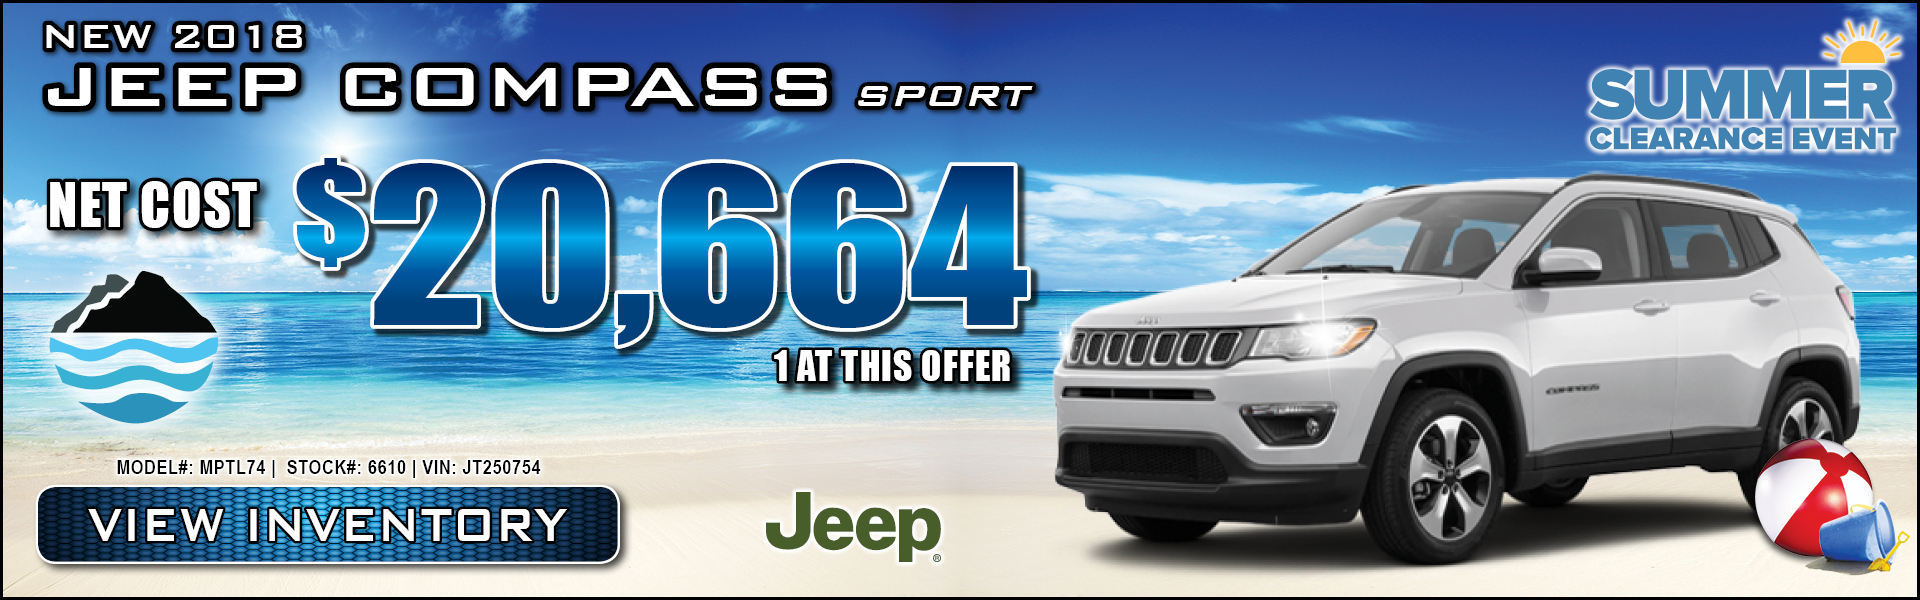 Riverside County Chrysler Dodge Jeep RAM | Now Serving Inland Empire